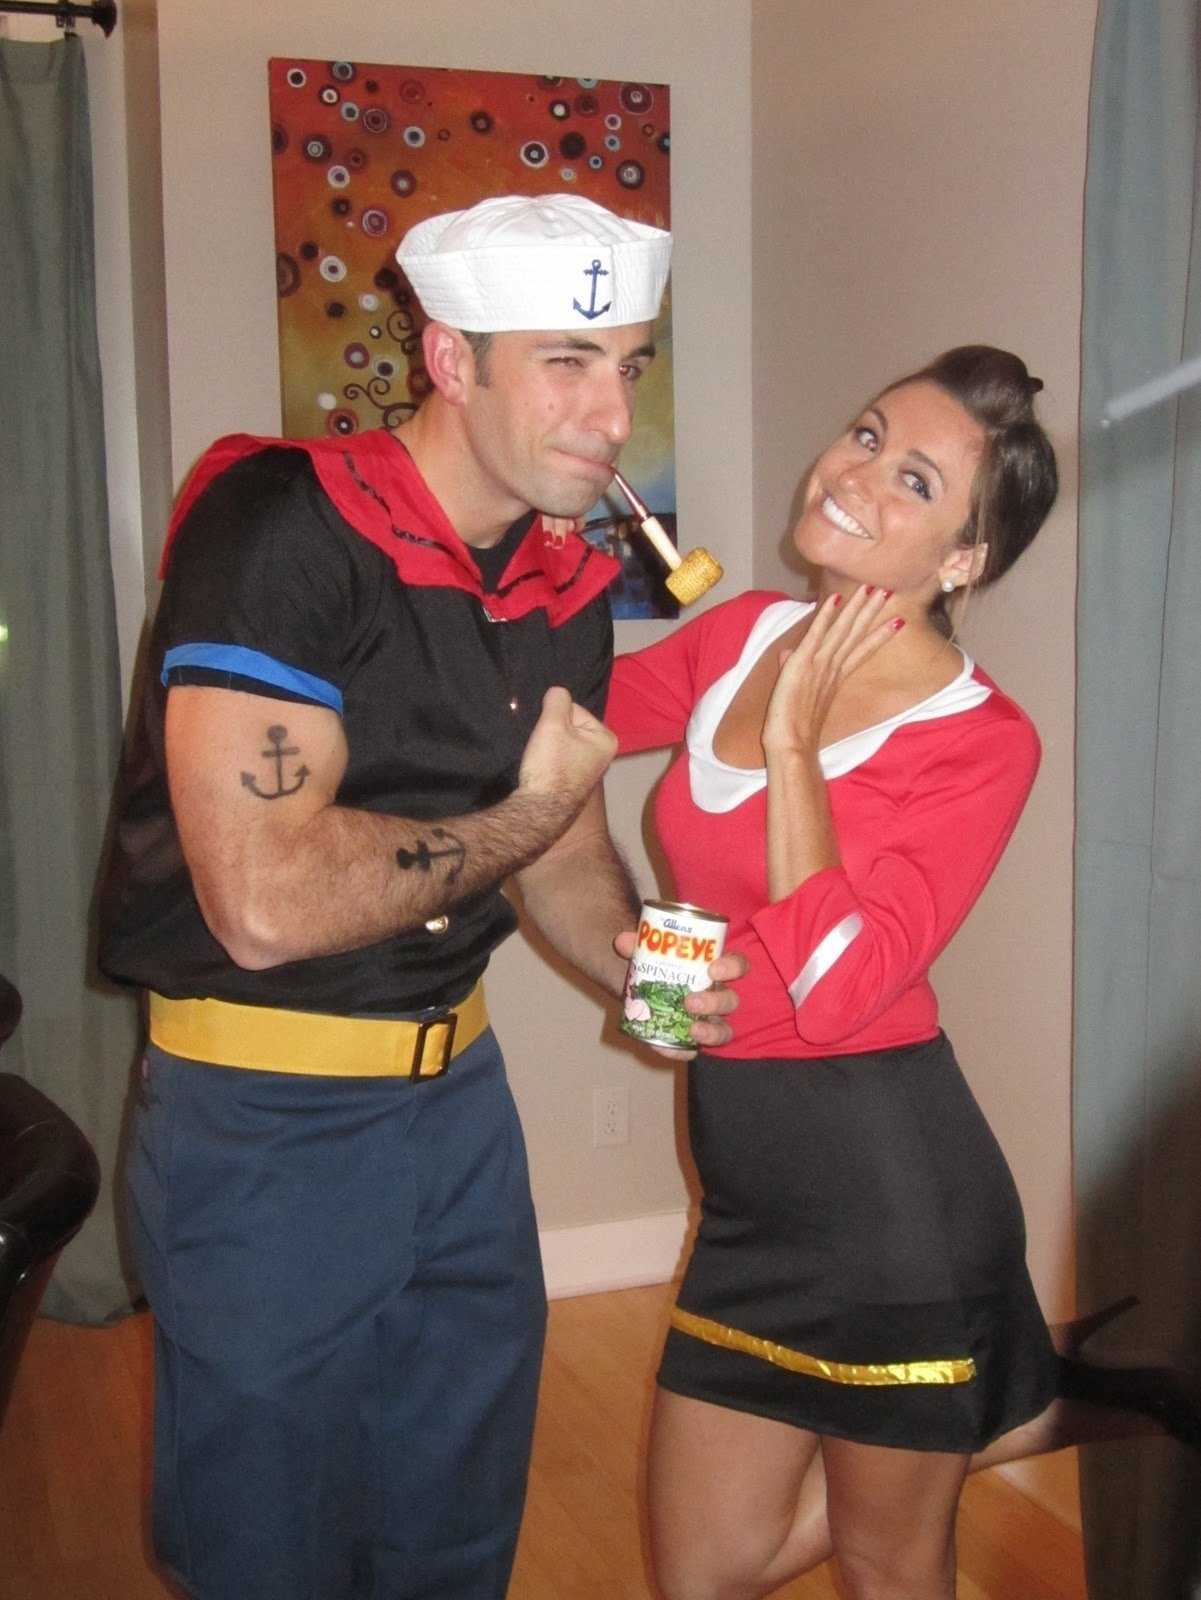 10 Amazing Great Costume Ideas For Couples 25 genius diy couples costumes brit co 13